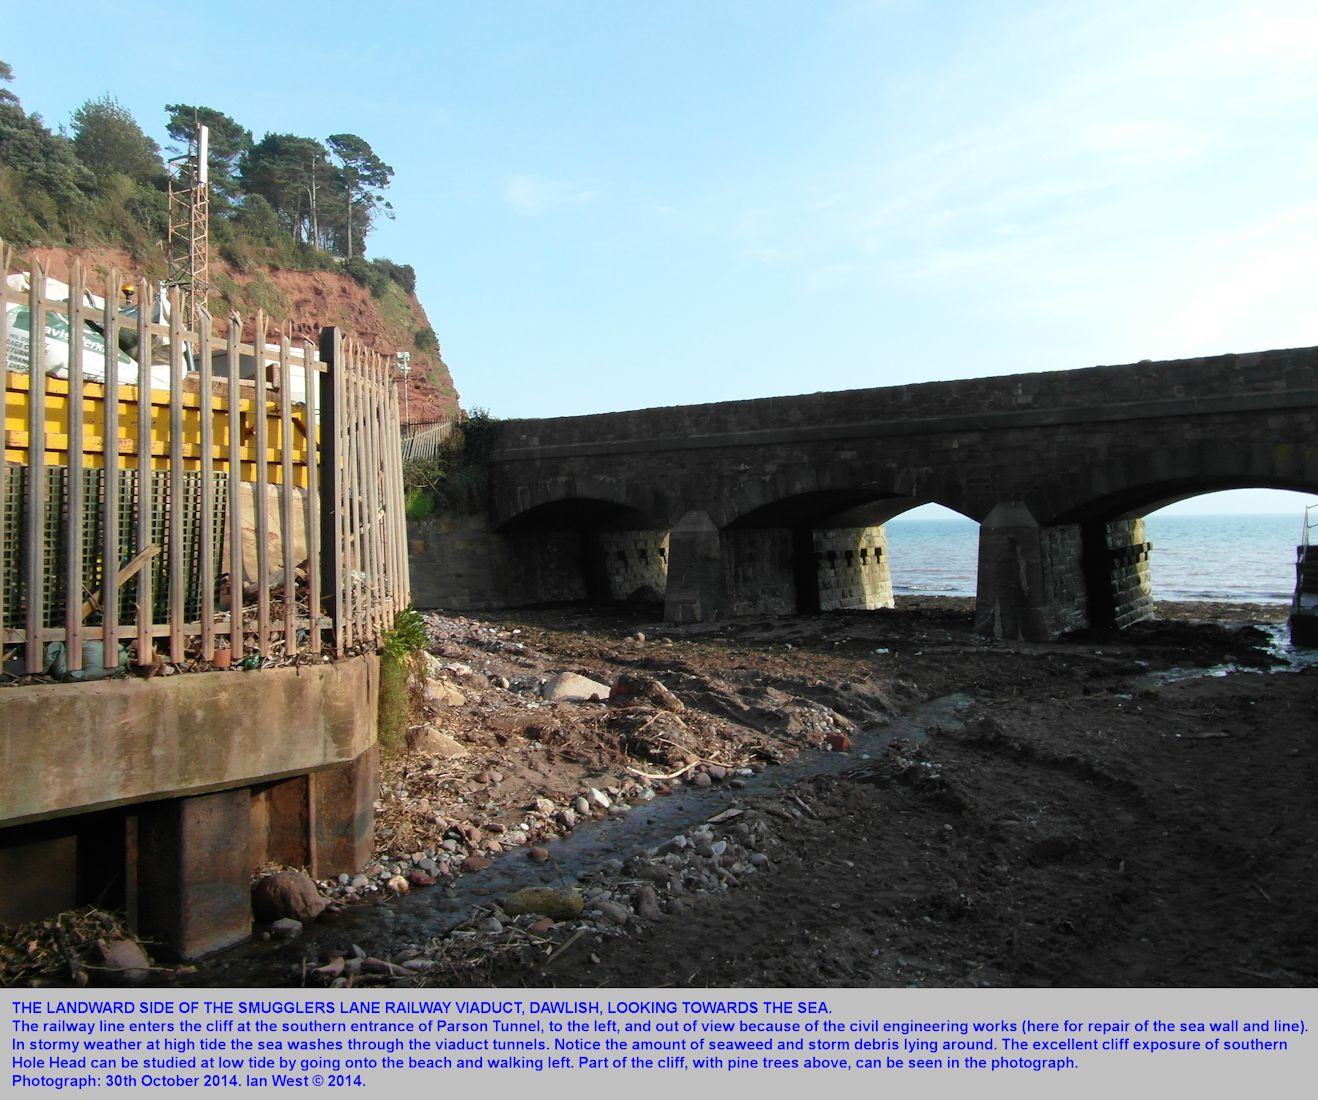 The Smugglers Lane Viaduct, adjacent to the southern entrance of the Parson Tunnel and the good cliff exposure at the southern part of Hole Head, Dawlish,  Devon, 30th October 2014, by Ian West